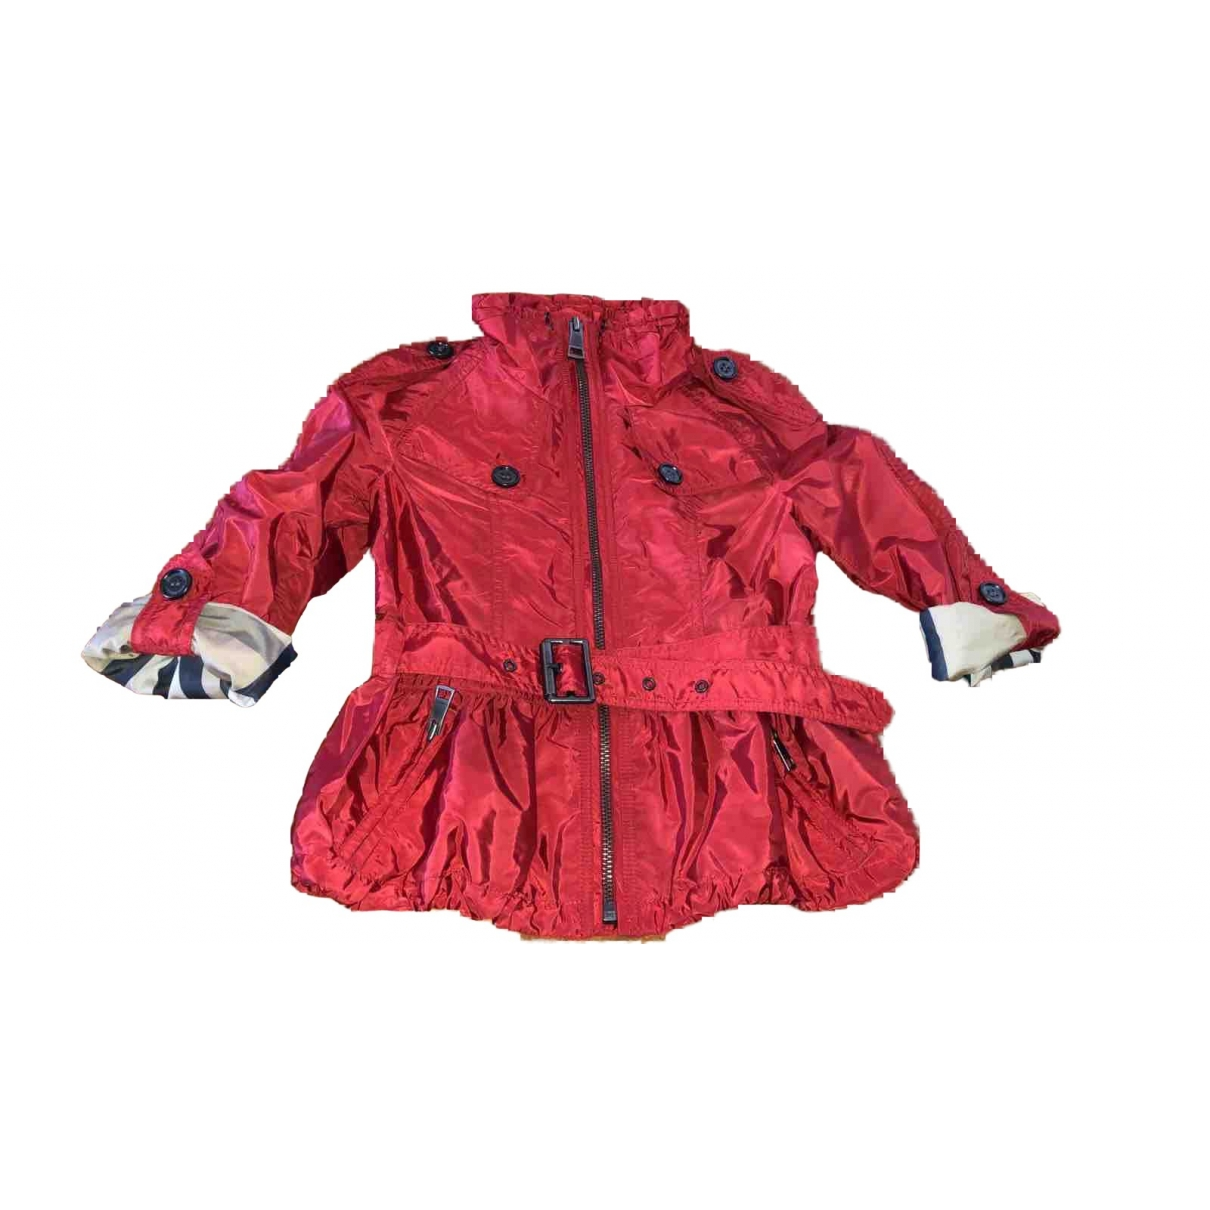 Burberry \N Jacke, Maentel in  Rot Polyester